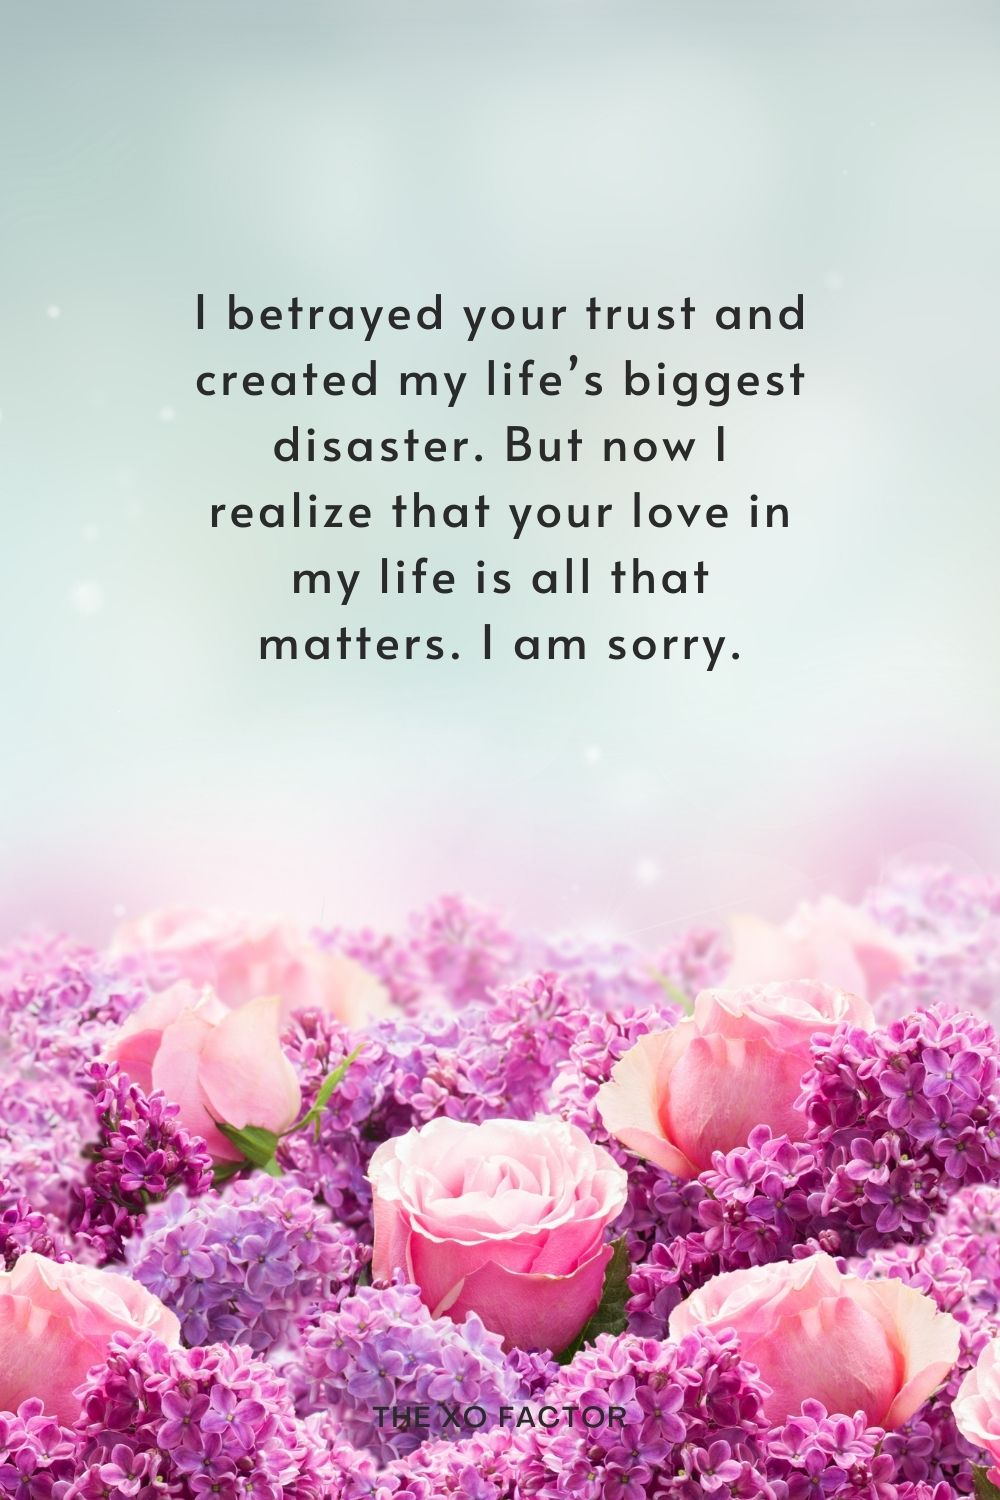 I betrayed your trust and created my life's biggest disaster. But now I realize that your love in my life is all that matters. I am sorry.